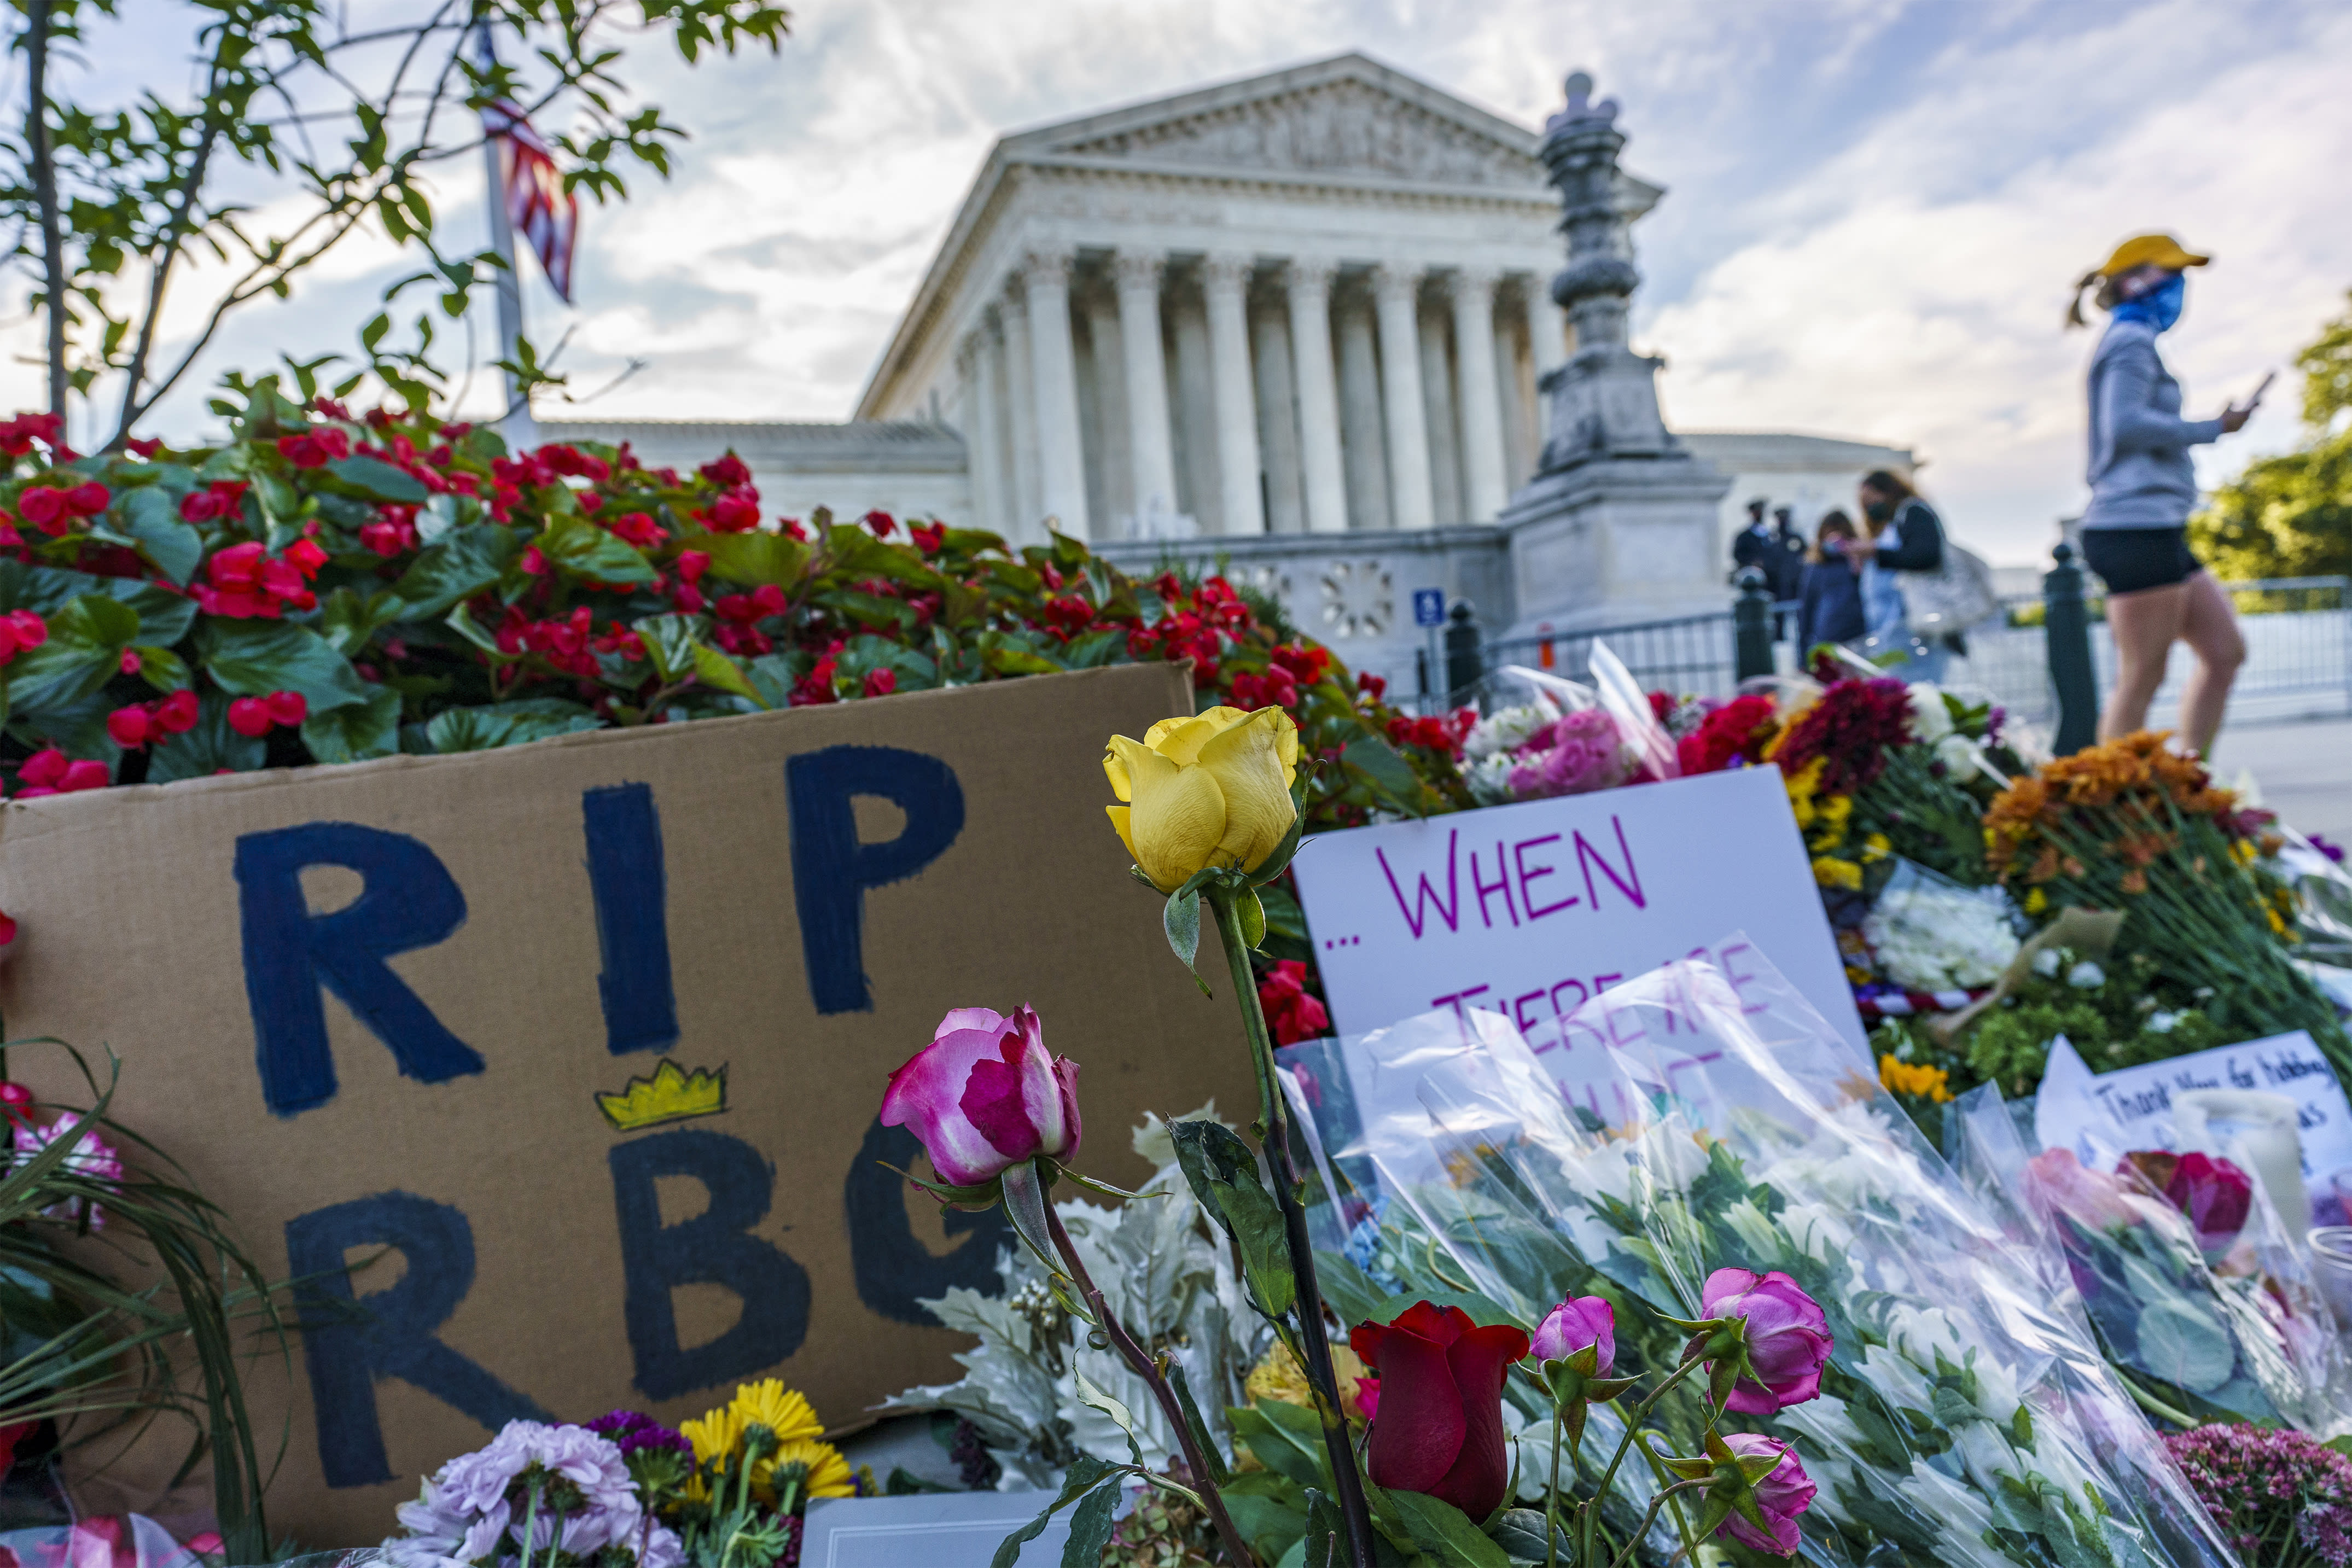 People gather at the Supreme Court on the morning after the death of Justice Ruth Bader Ginsburg, 87, Saturday, Sept. 19, 2020 in Washington. (AP Photo/J. Scott Applewhite)